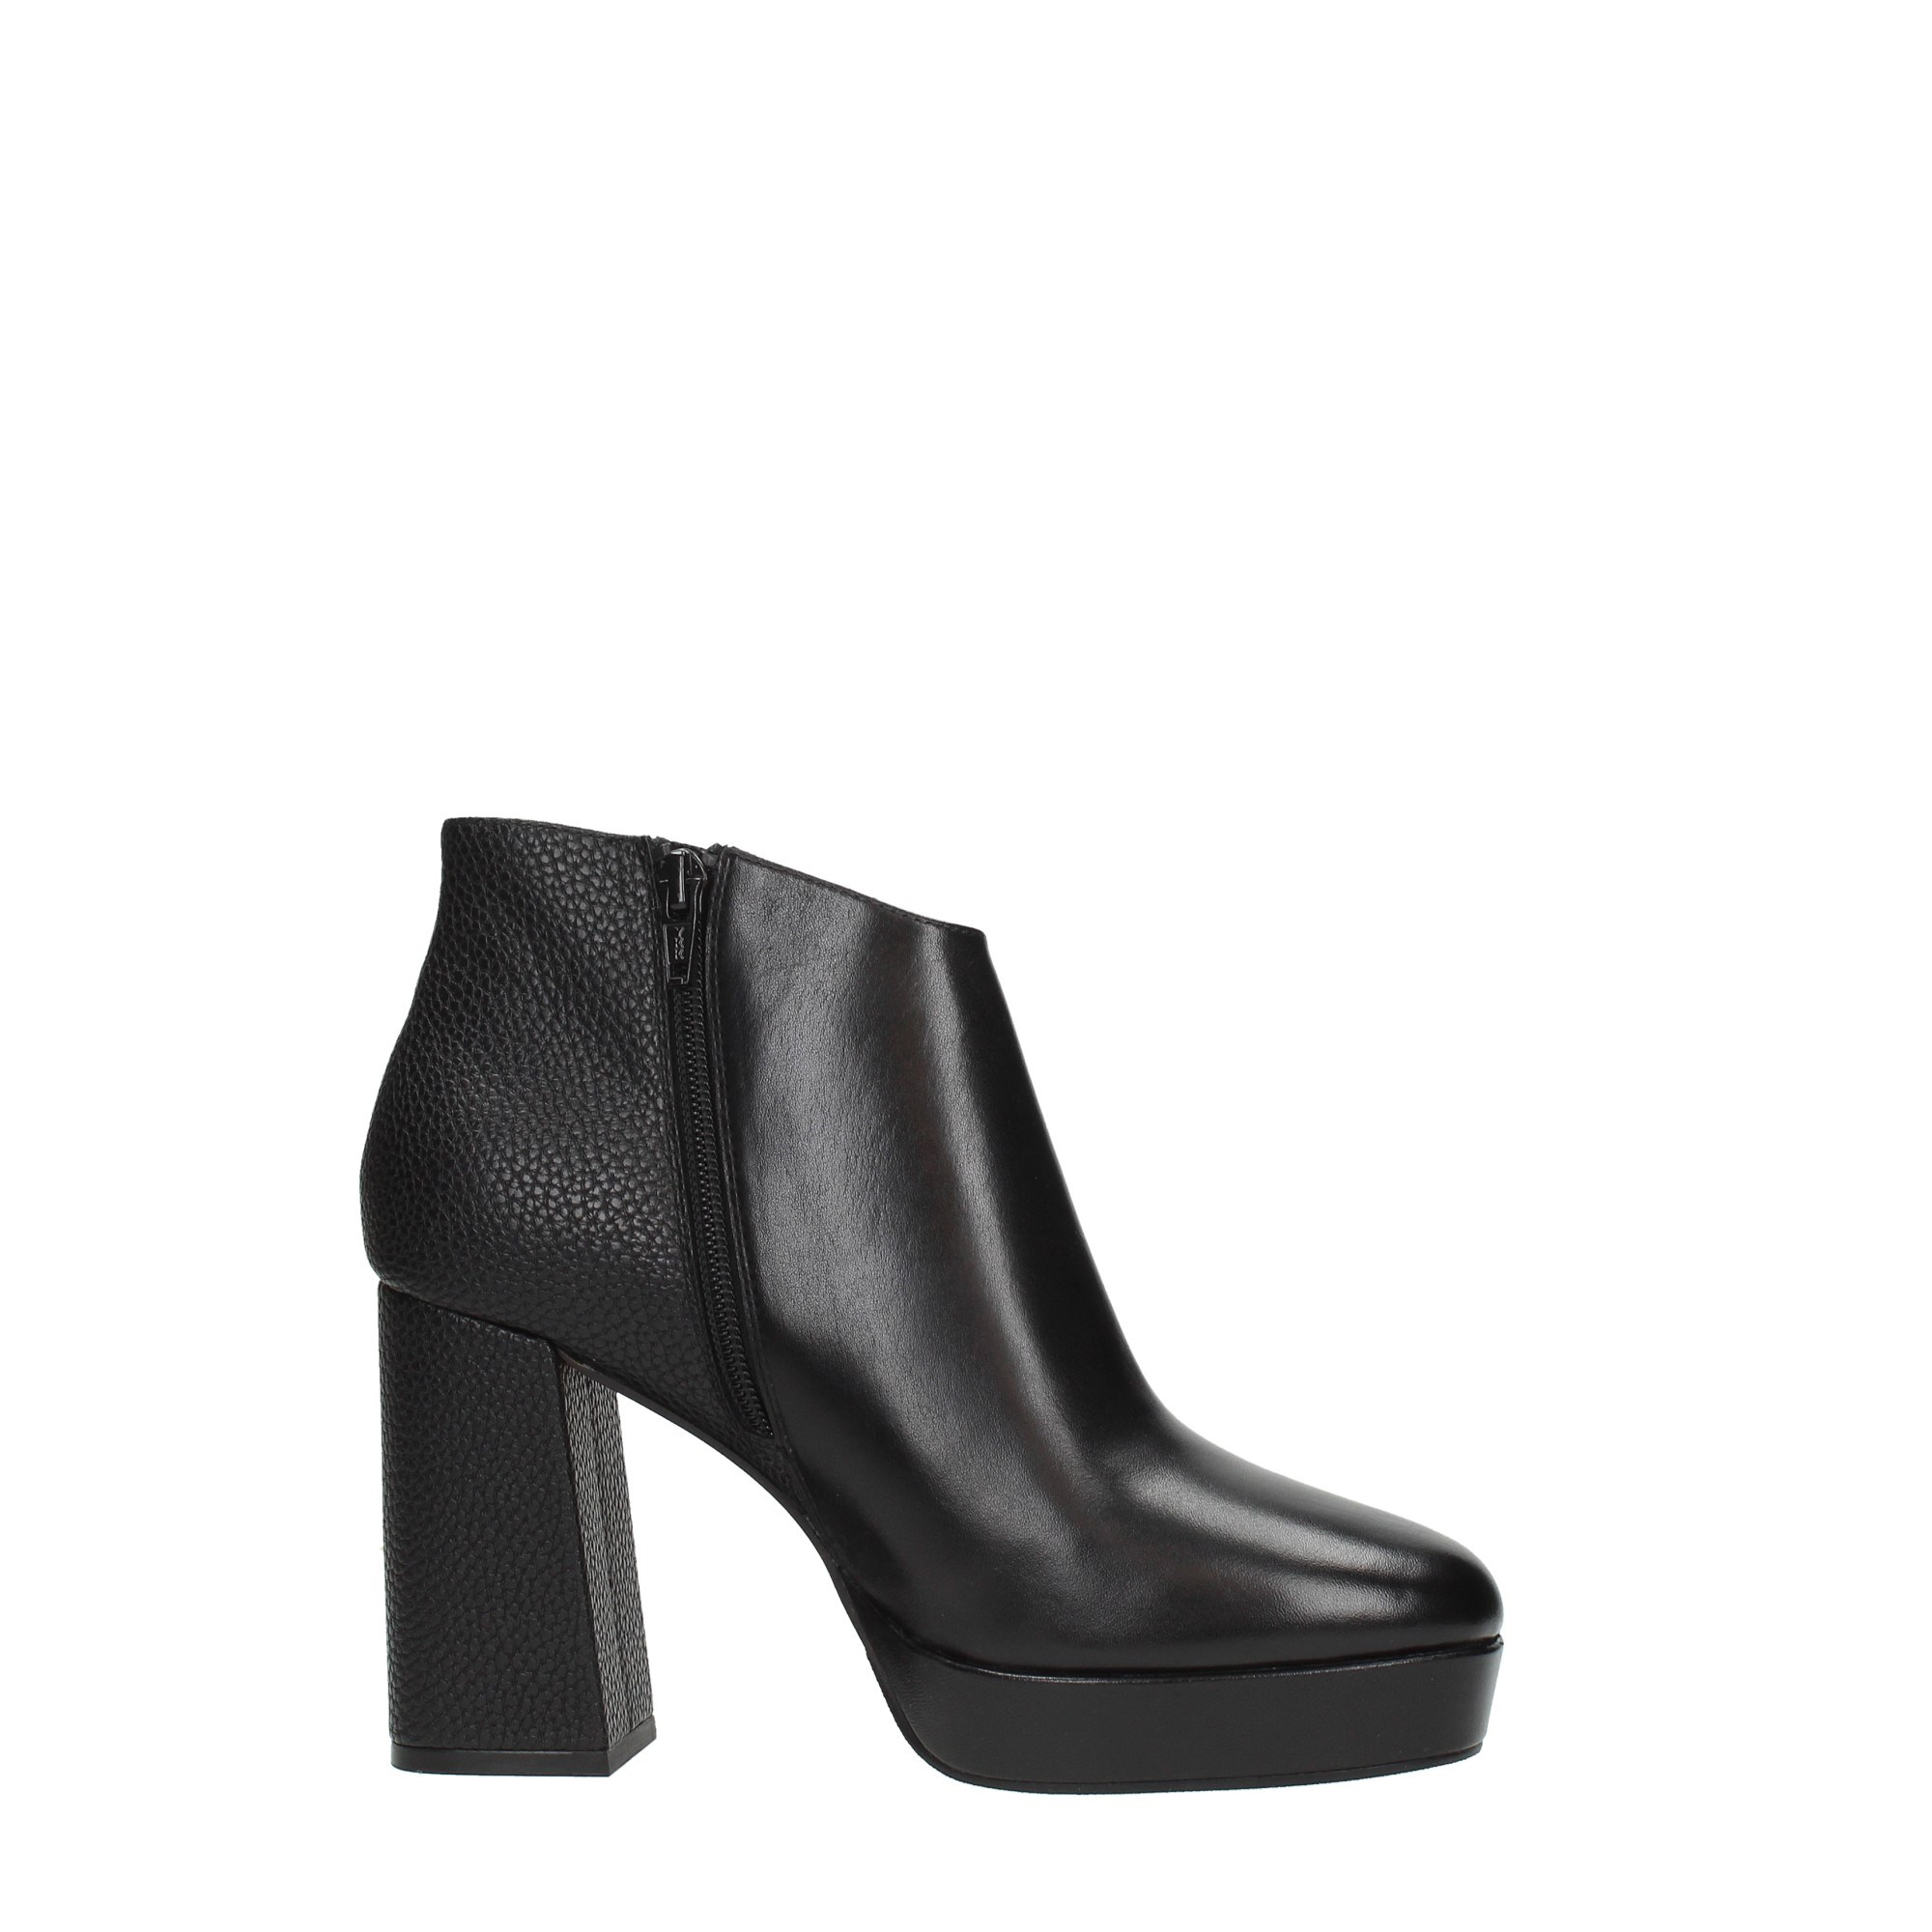 A P E P A Z Z A Shoes Women Booties Black FONADIA01